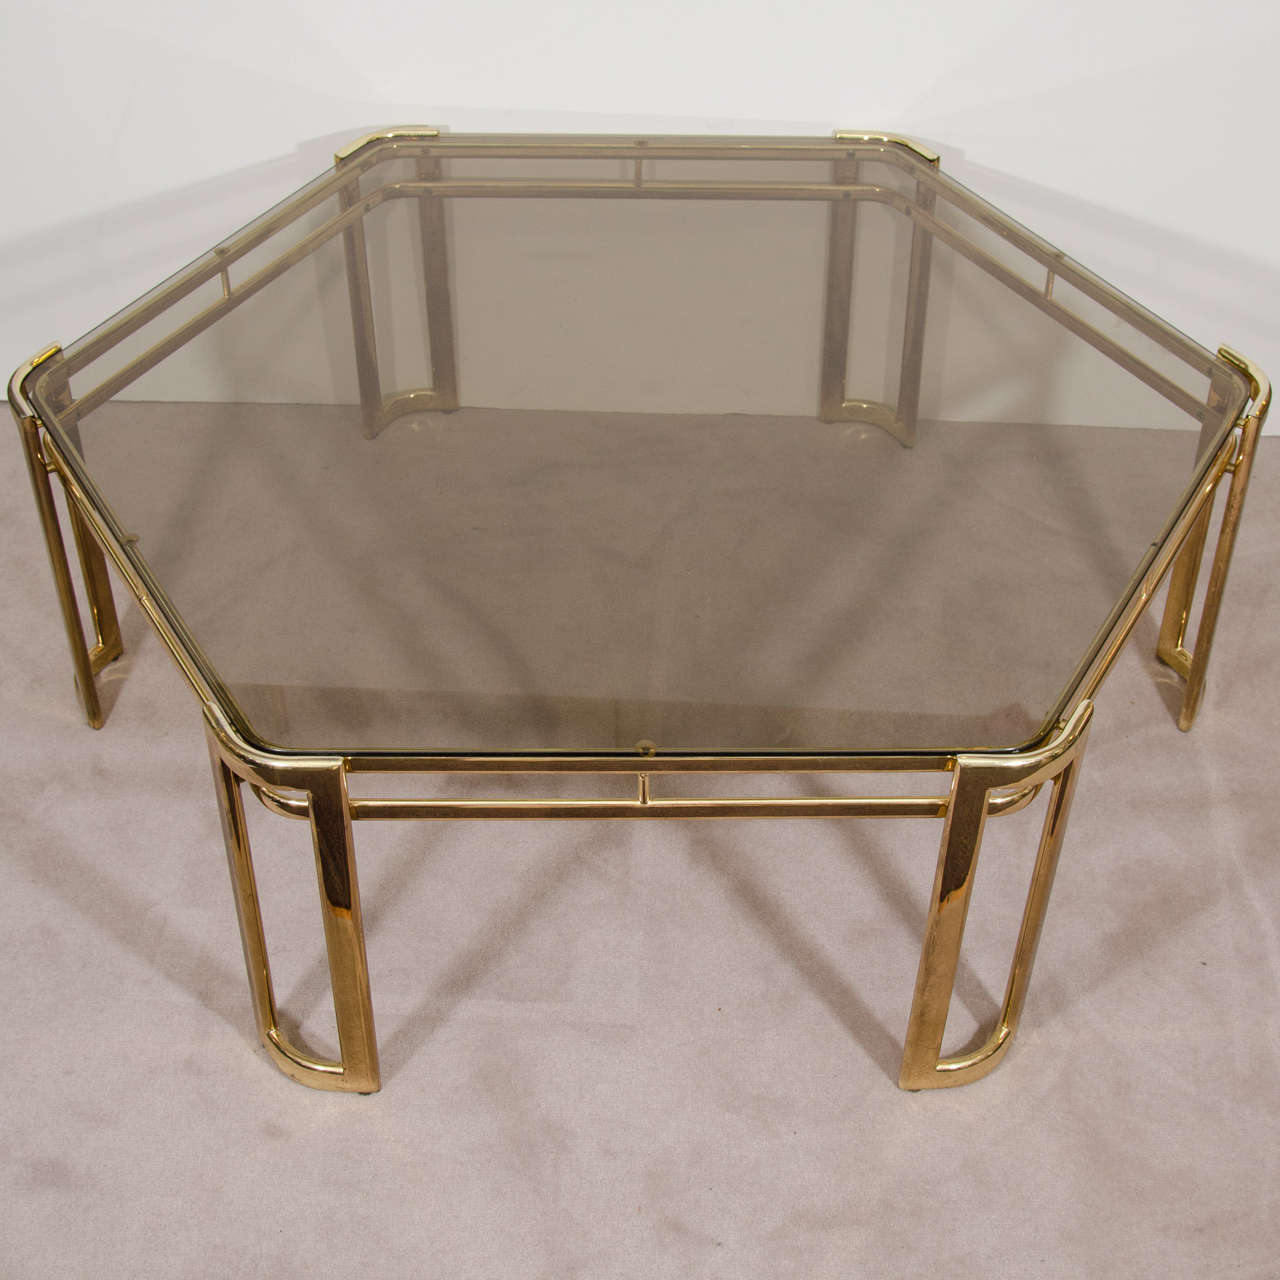 Midcentury Brass Plated Hexagonal Coffee Or Cocktail Table For Sale At 1stdibs